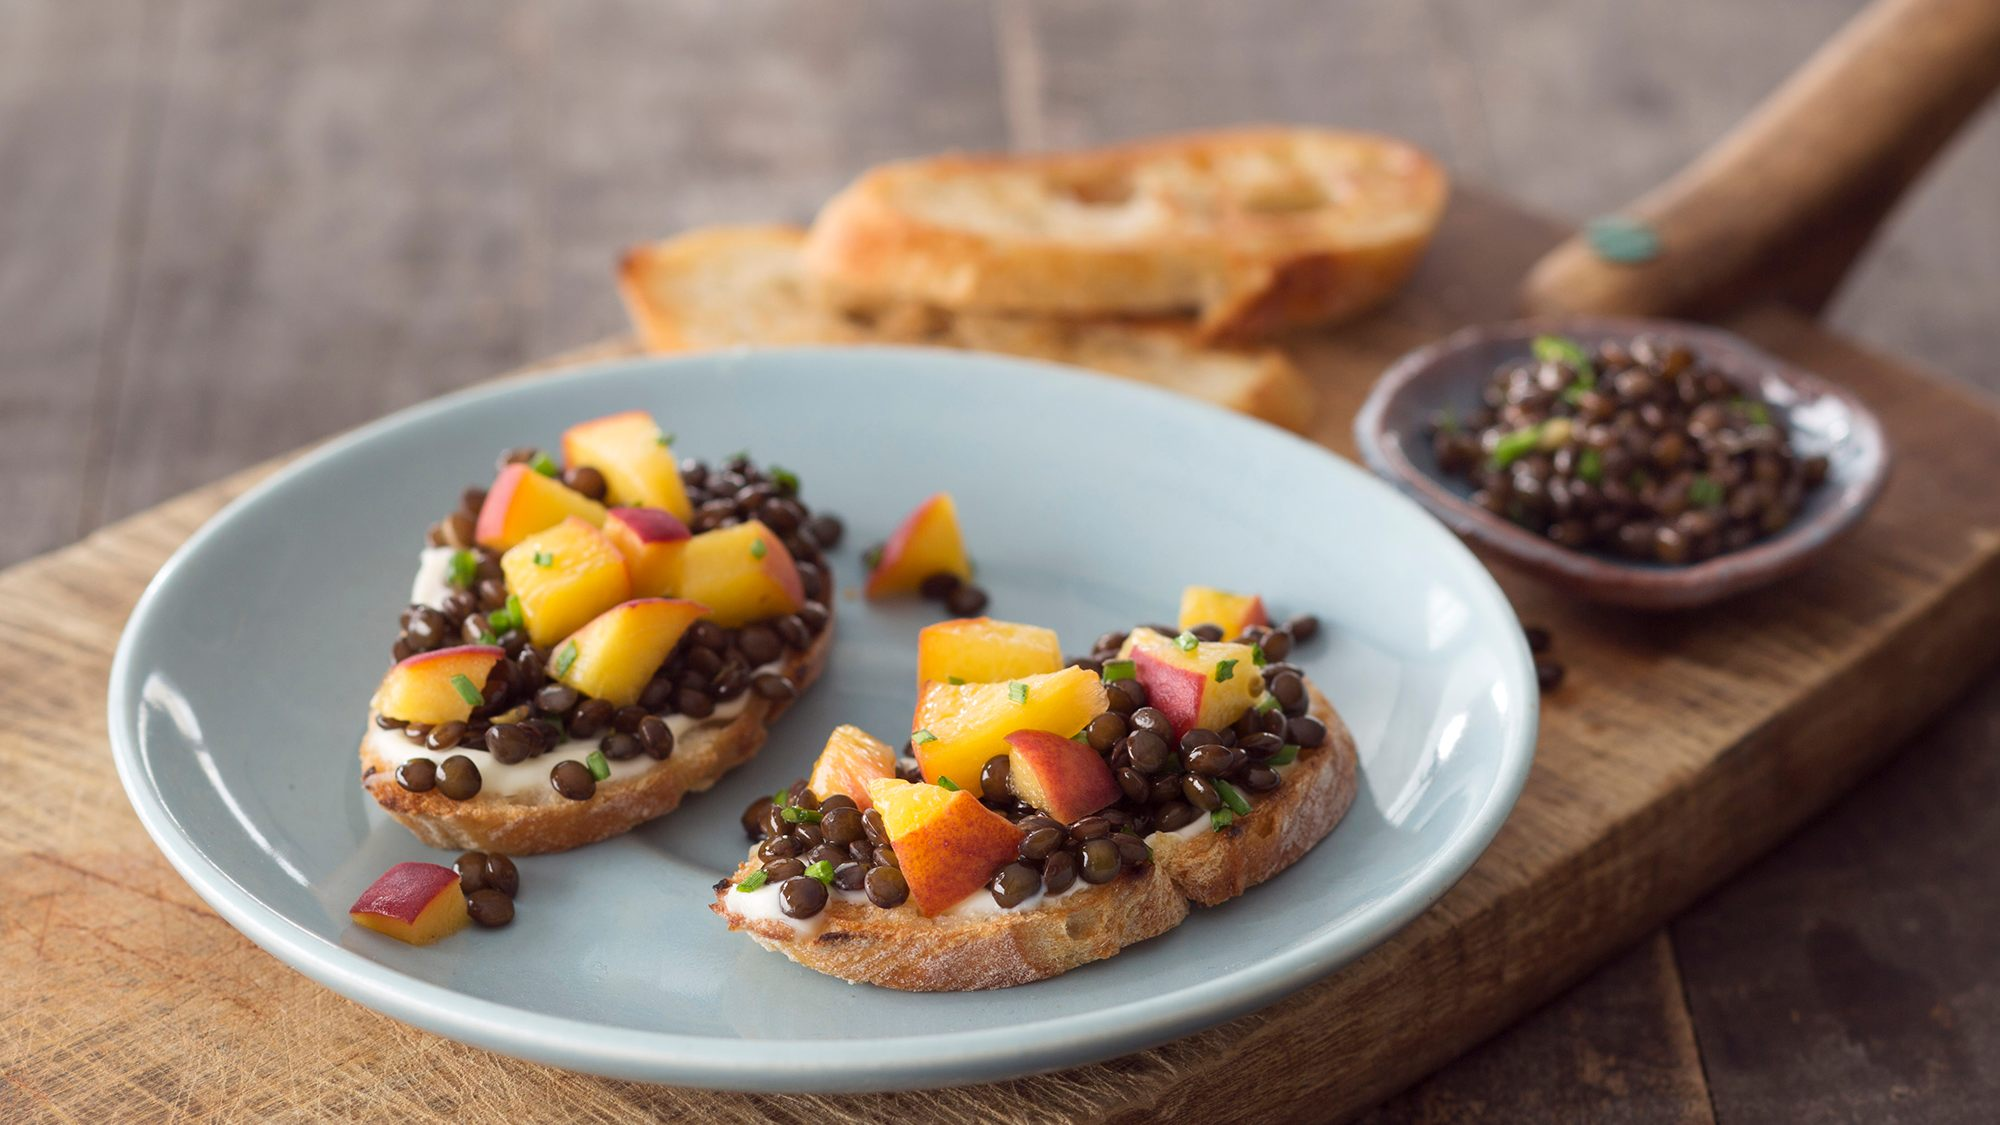 McCormick Gourmet Pickled Peach and Black Beluga Lentil Toasts